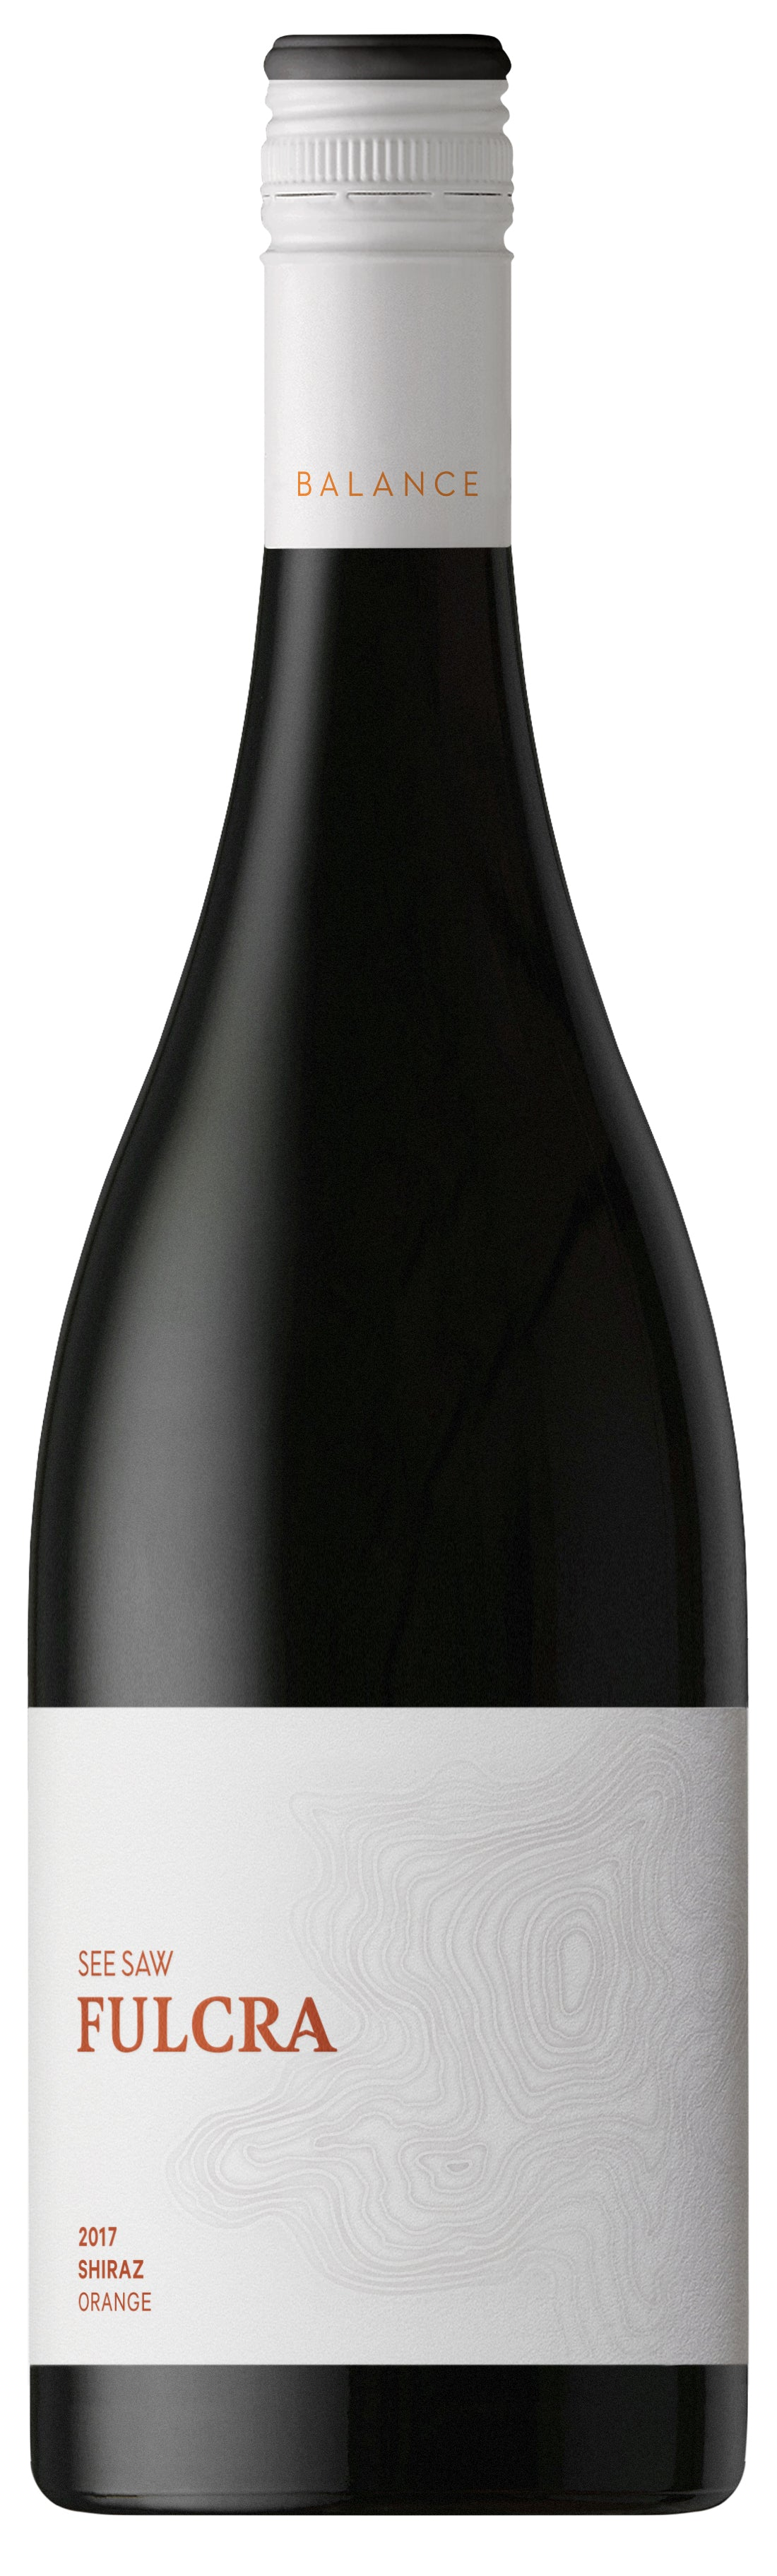 See Saw Fulcra Shiraz 2017